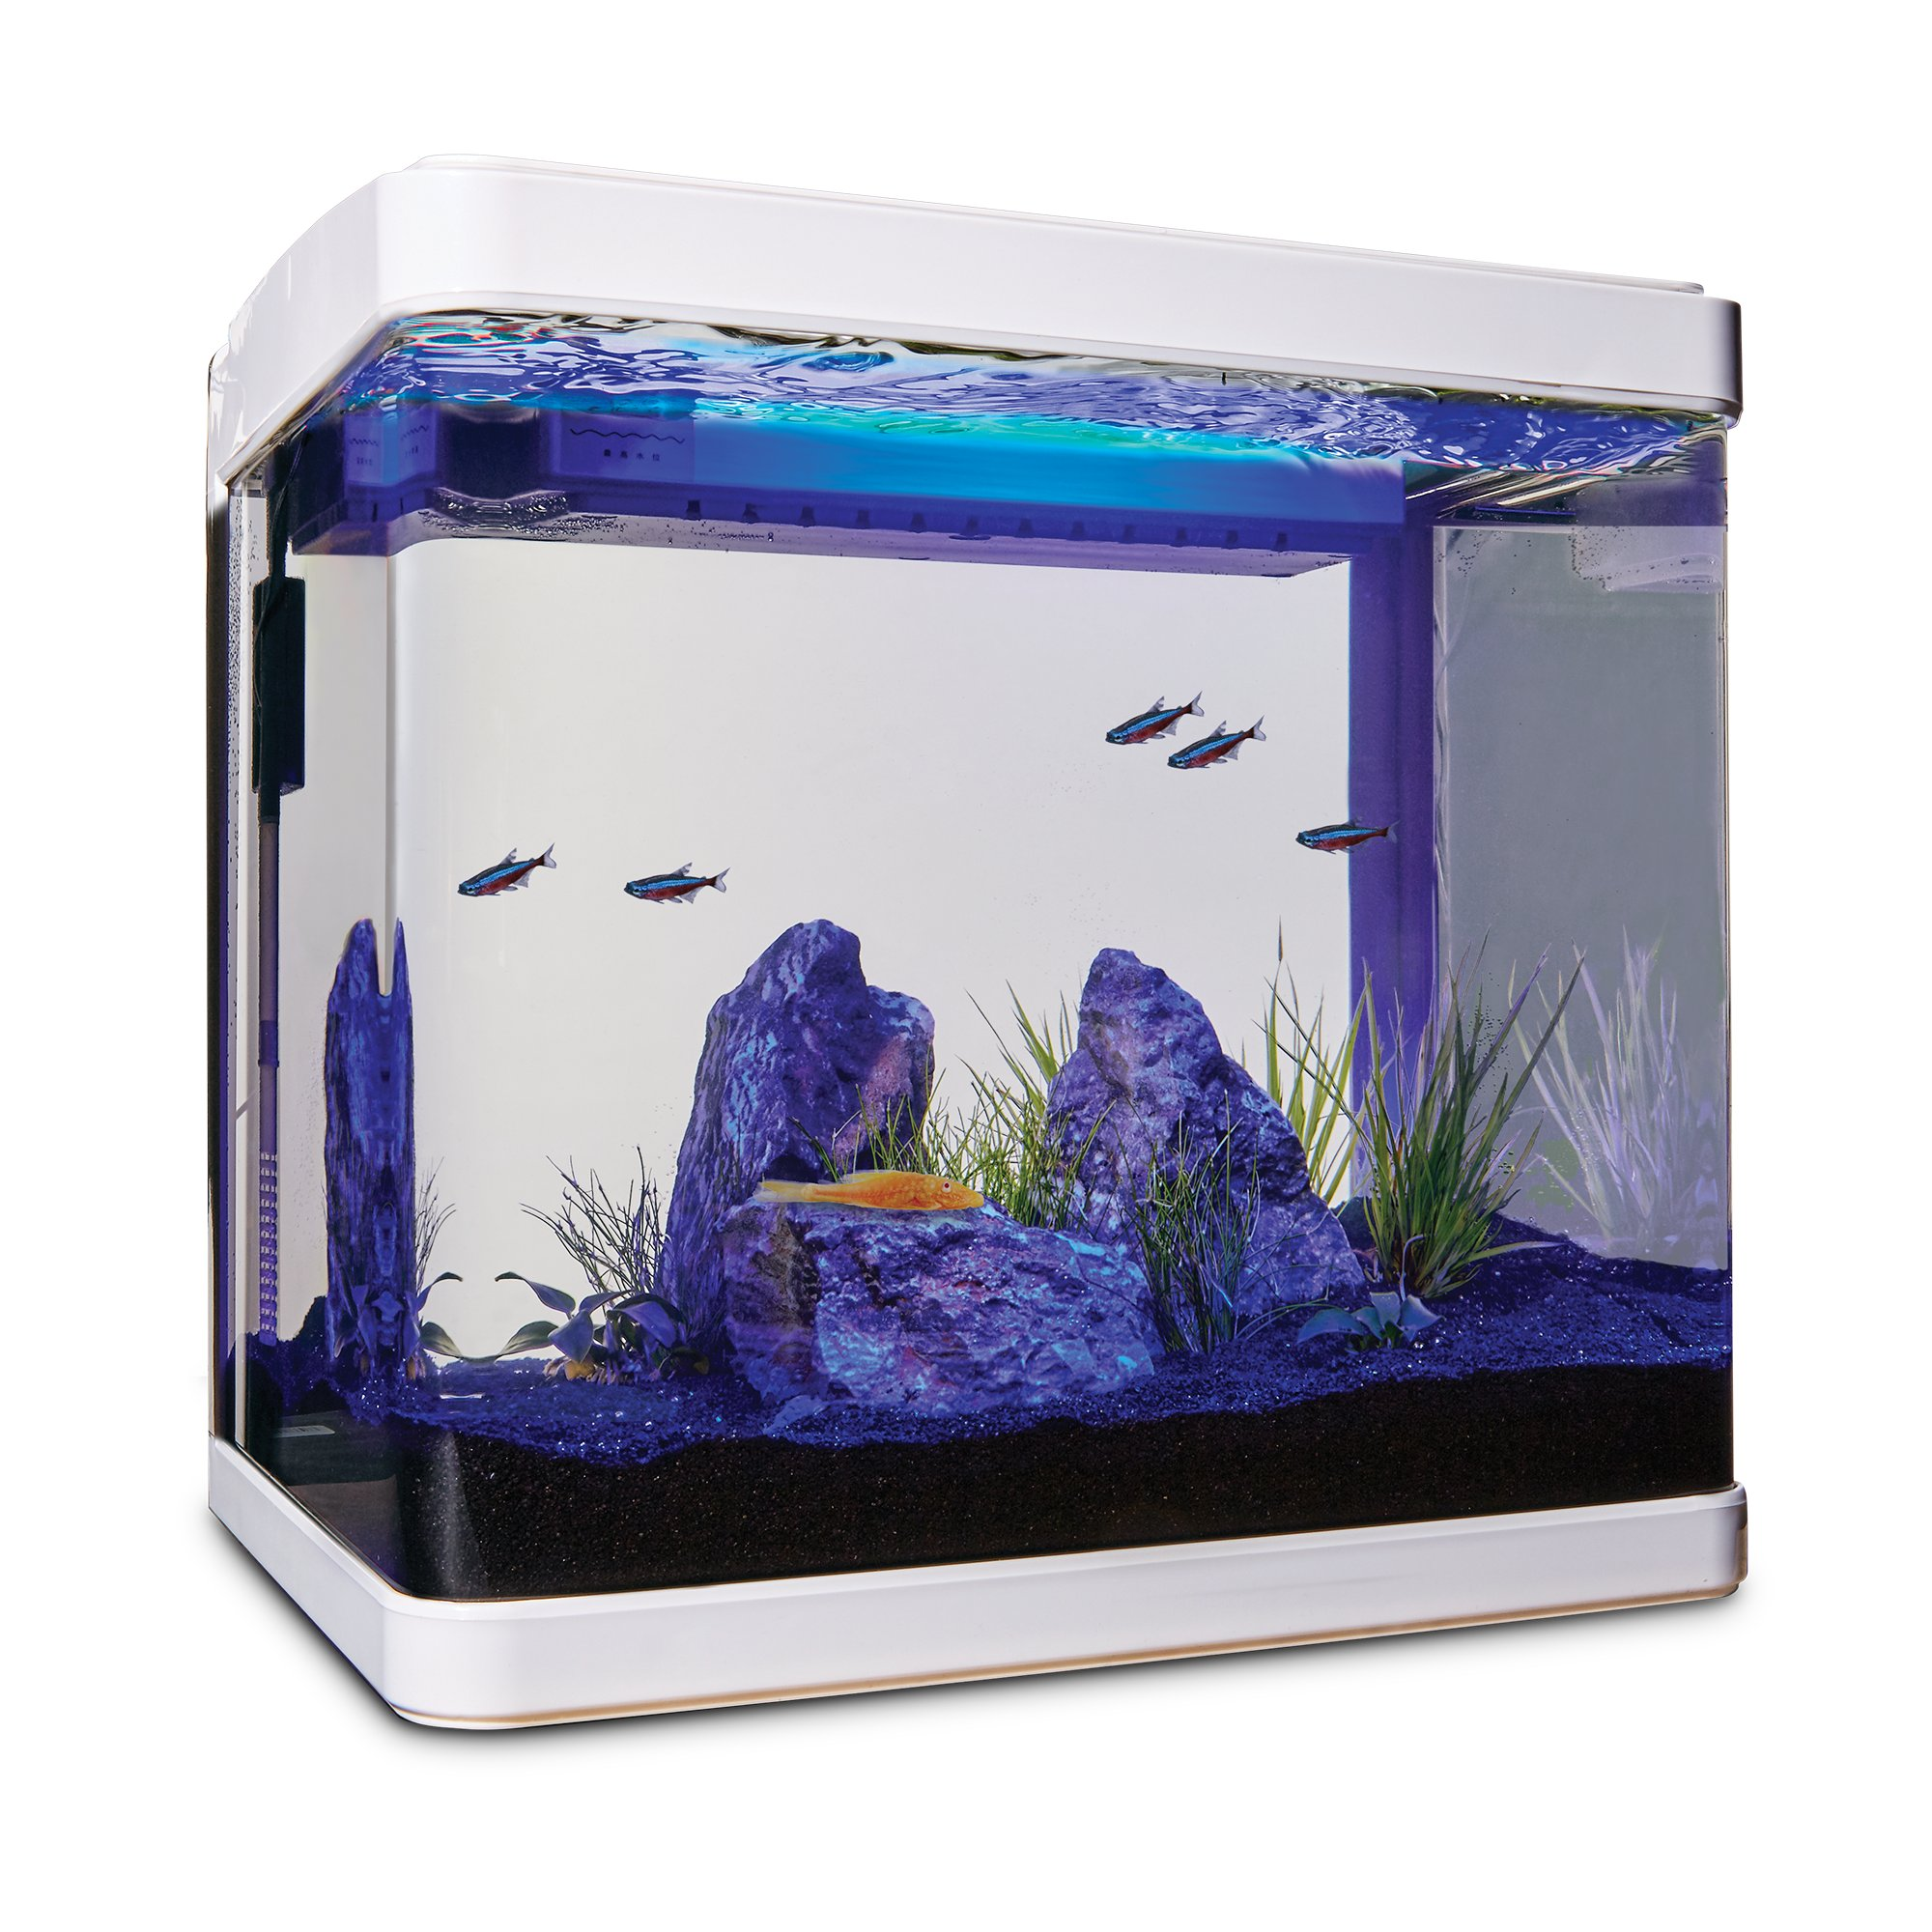 Aqueon 55 gallon aquarium 1000 aquarium ideas for 55 gallon fish tank petco